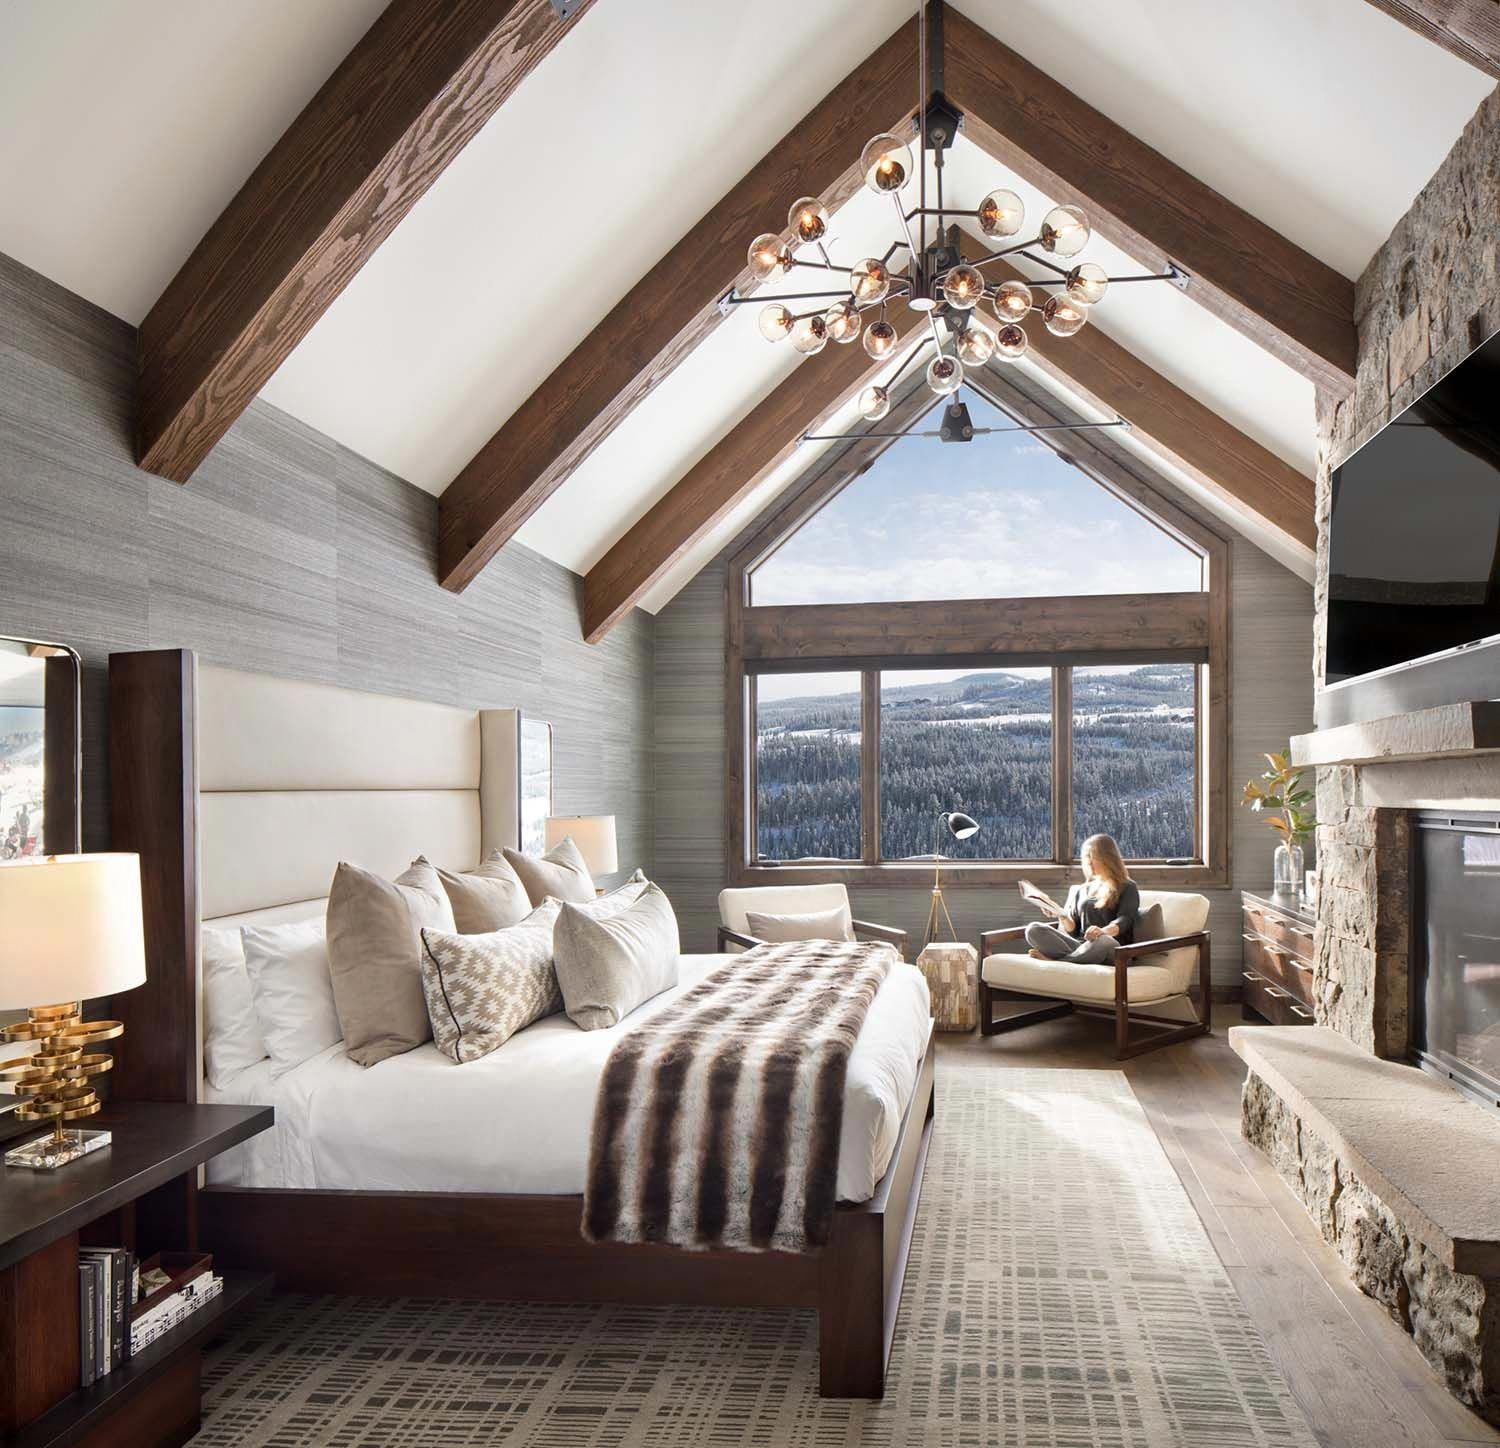 Gorgeous mid-century modern inspired mountain home in Big ... on mountain contemporary bedroom, monticello bedroom, salmon bedroom, london bedroom, murphy bedroom, lexington bedroom, harrison bedroom, pendleton bedroom, walnut bedroom, rustic bedroom, modern luxury bedroom, mexico bedroom, forest inspired bedroom, cabin bedroom, mount vernon bedroom, paris bedroom,